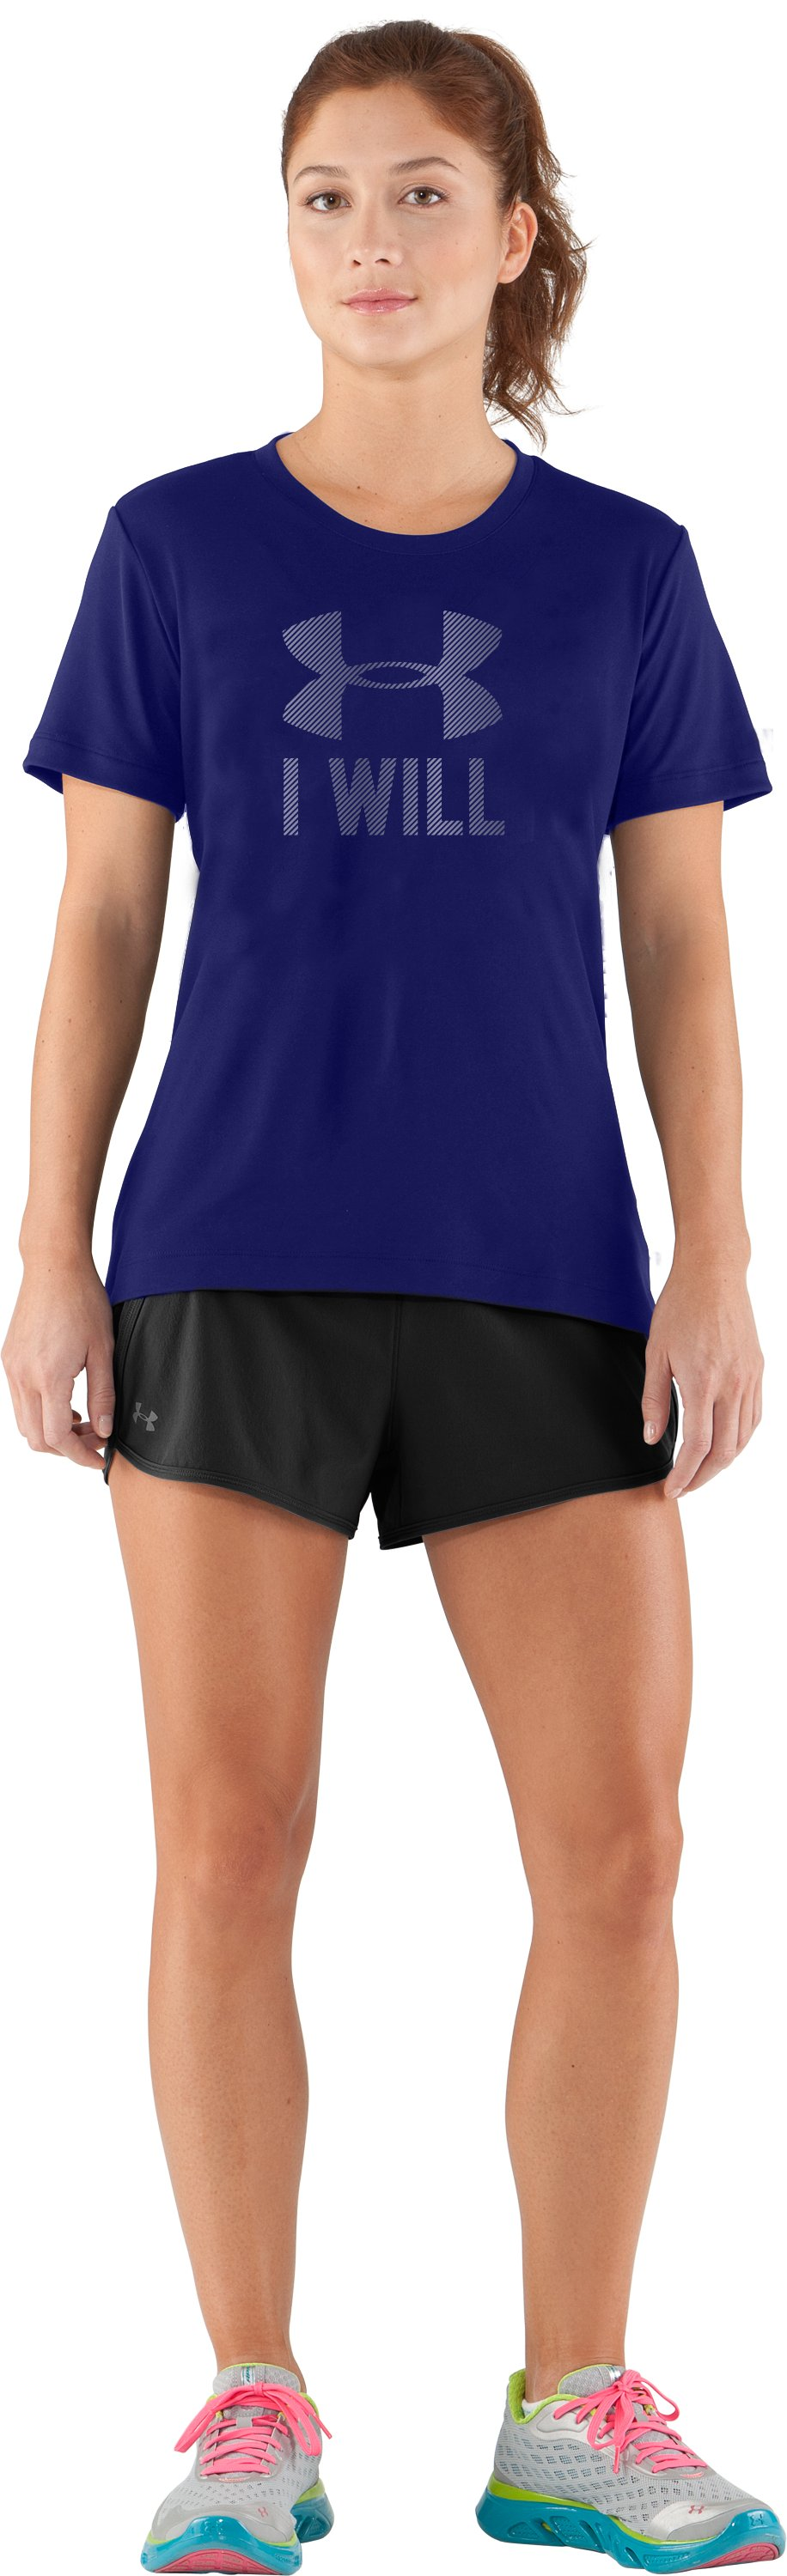 Women's UA I Will Short Sleeve, Monarchy, Front